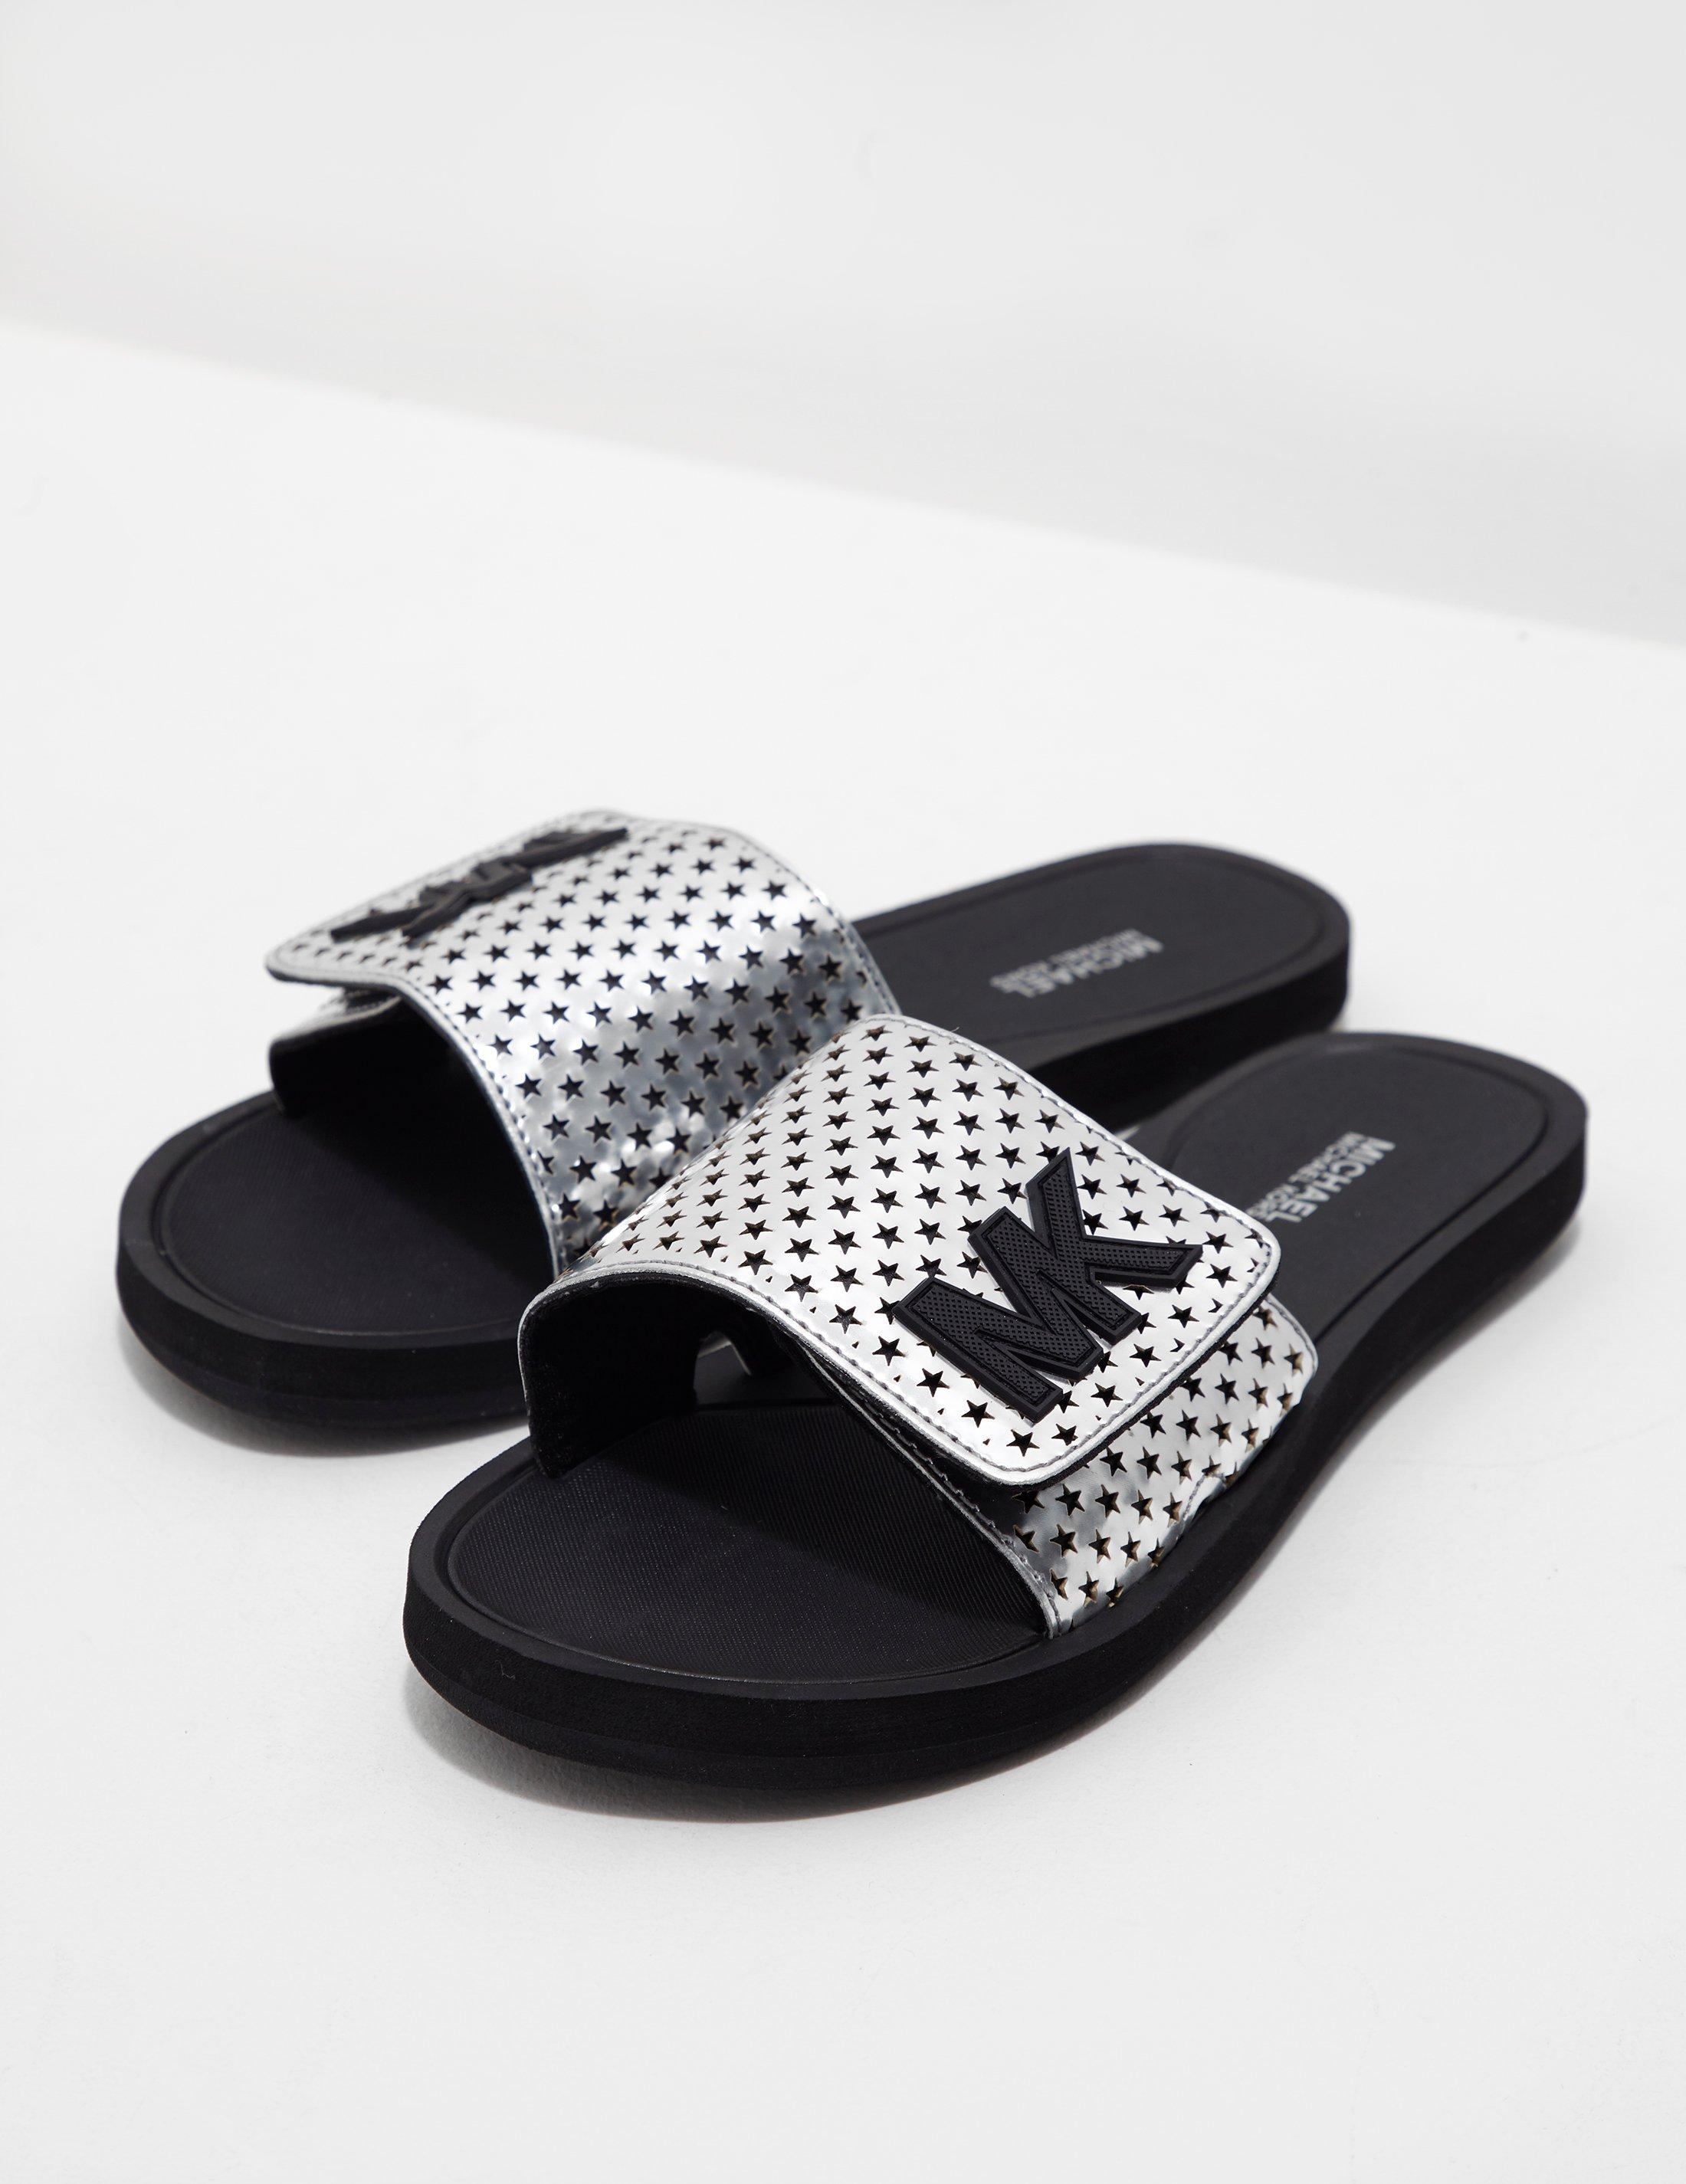 0981a9c93f5d Michael Kors Womens Slides Silver in Metallic - Lyst